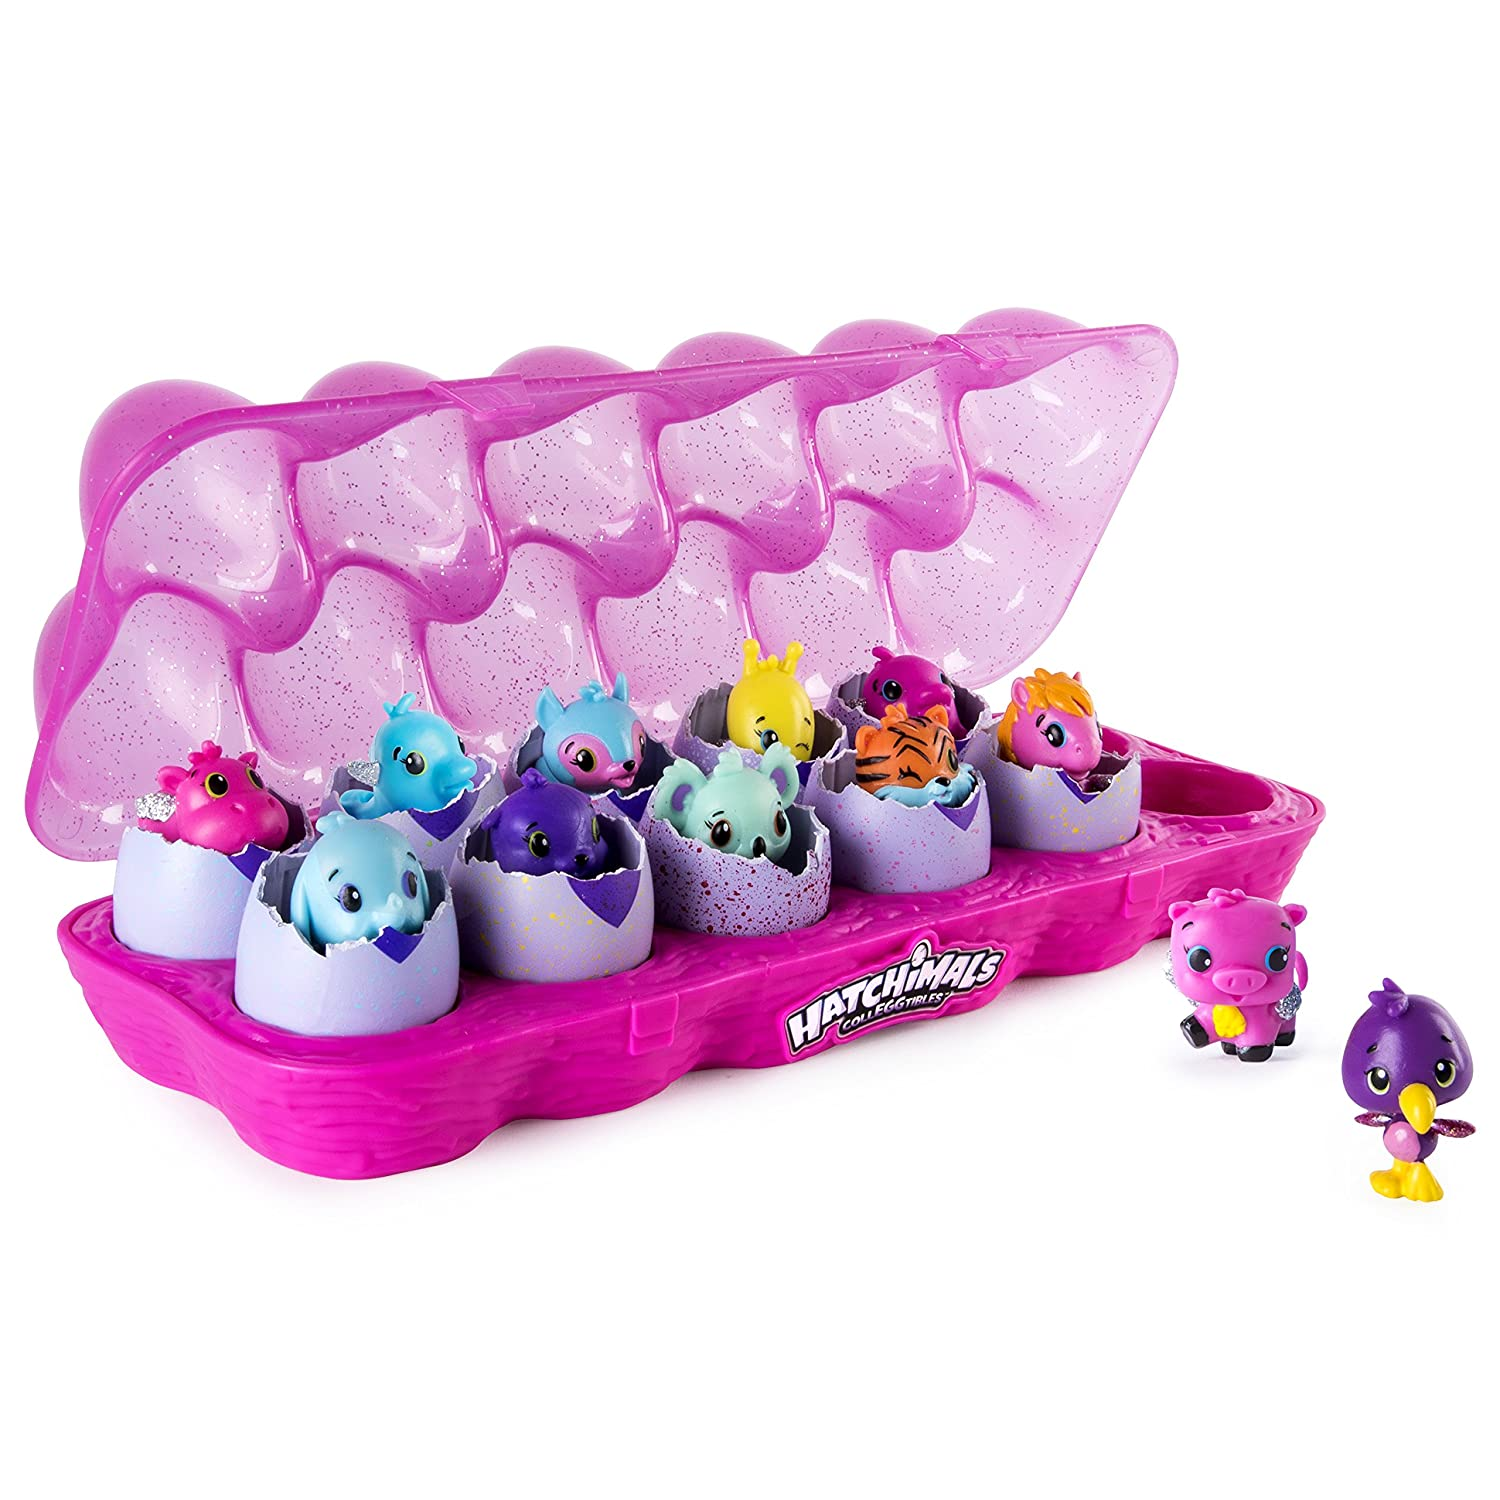 Hatchimals - Figurines à collectionner - 12 oeufs